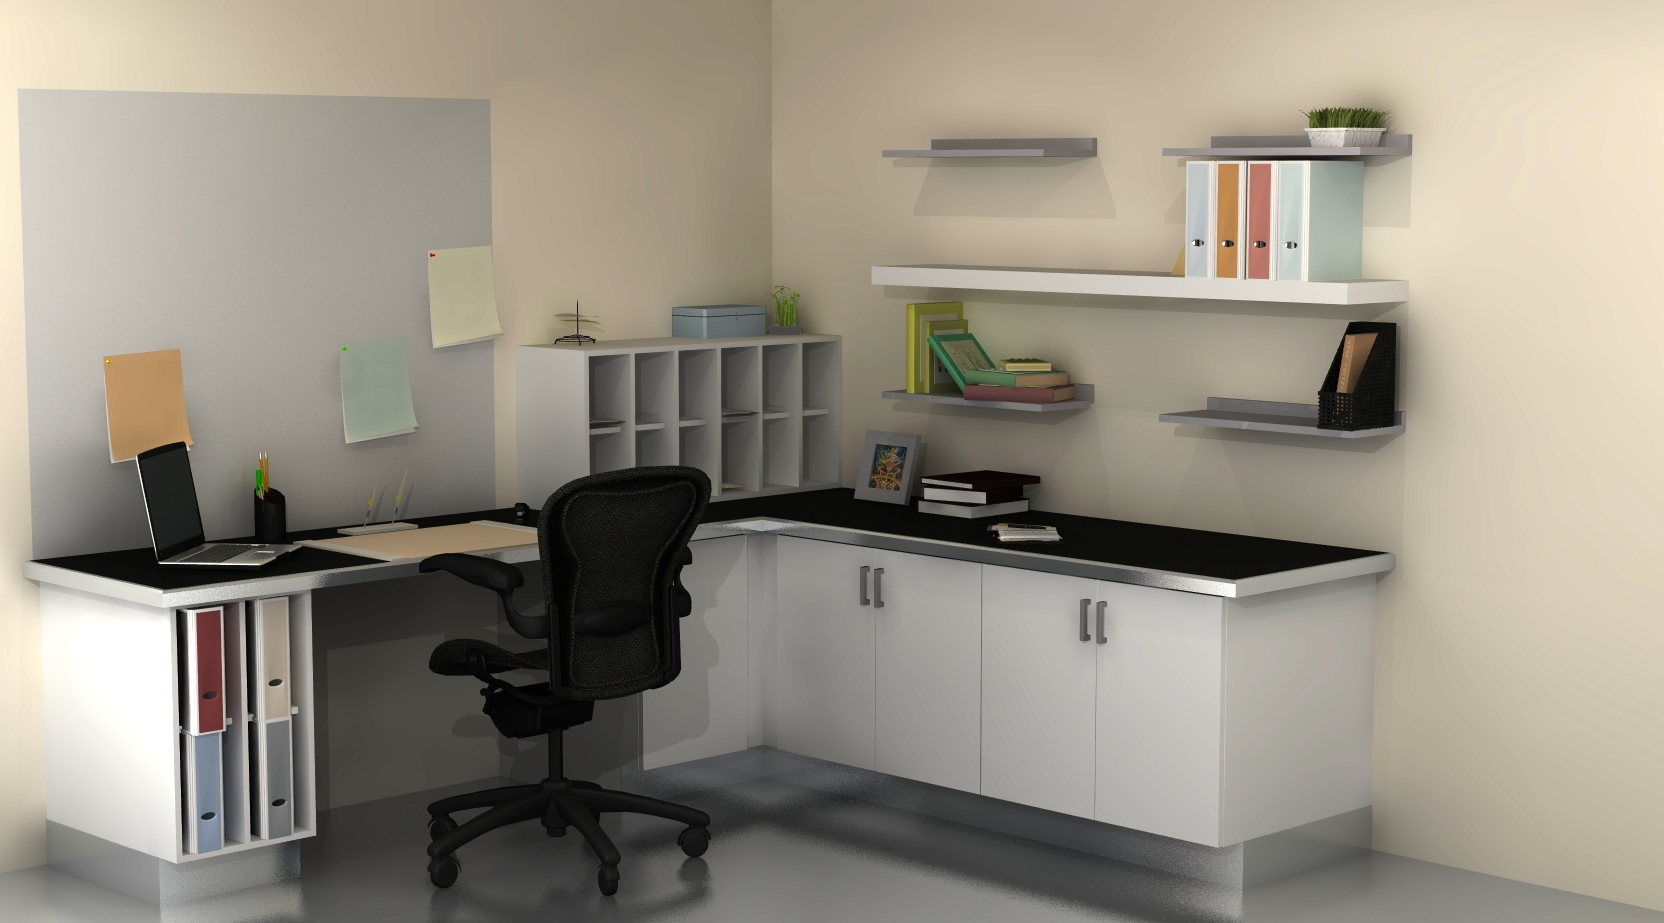 Useful spaces a home office with ikea cabinets for Office photos